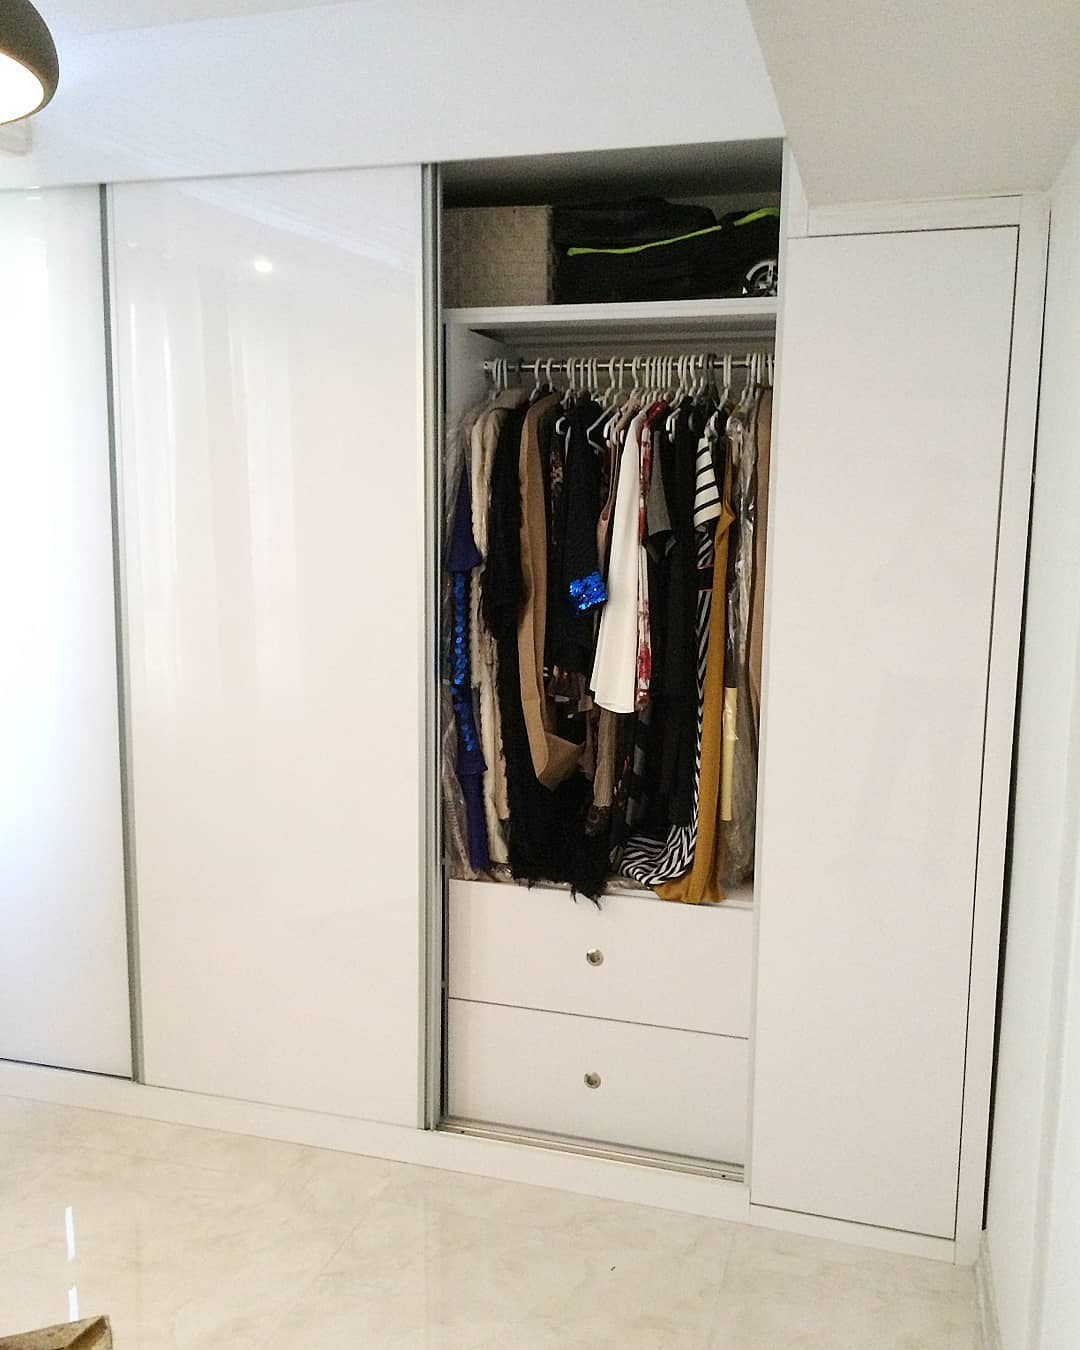 36 Best Closet Door ideas You Need to Try 2020,sliding closet door ideas,closet door ideas diy,closet door ideas for large openings